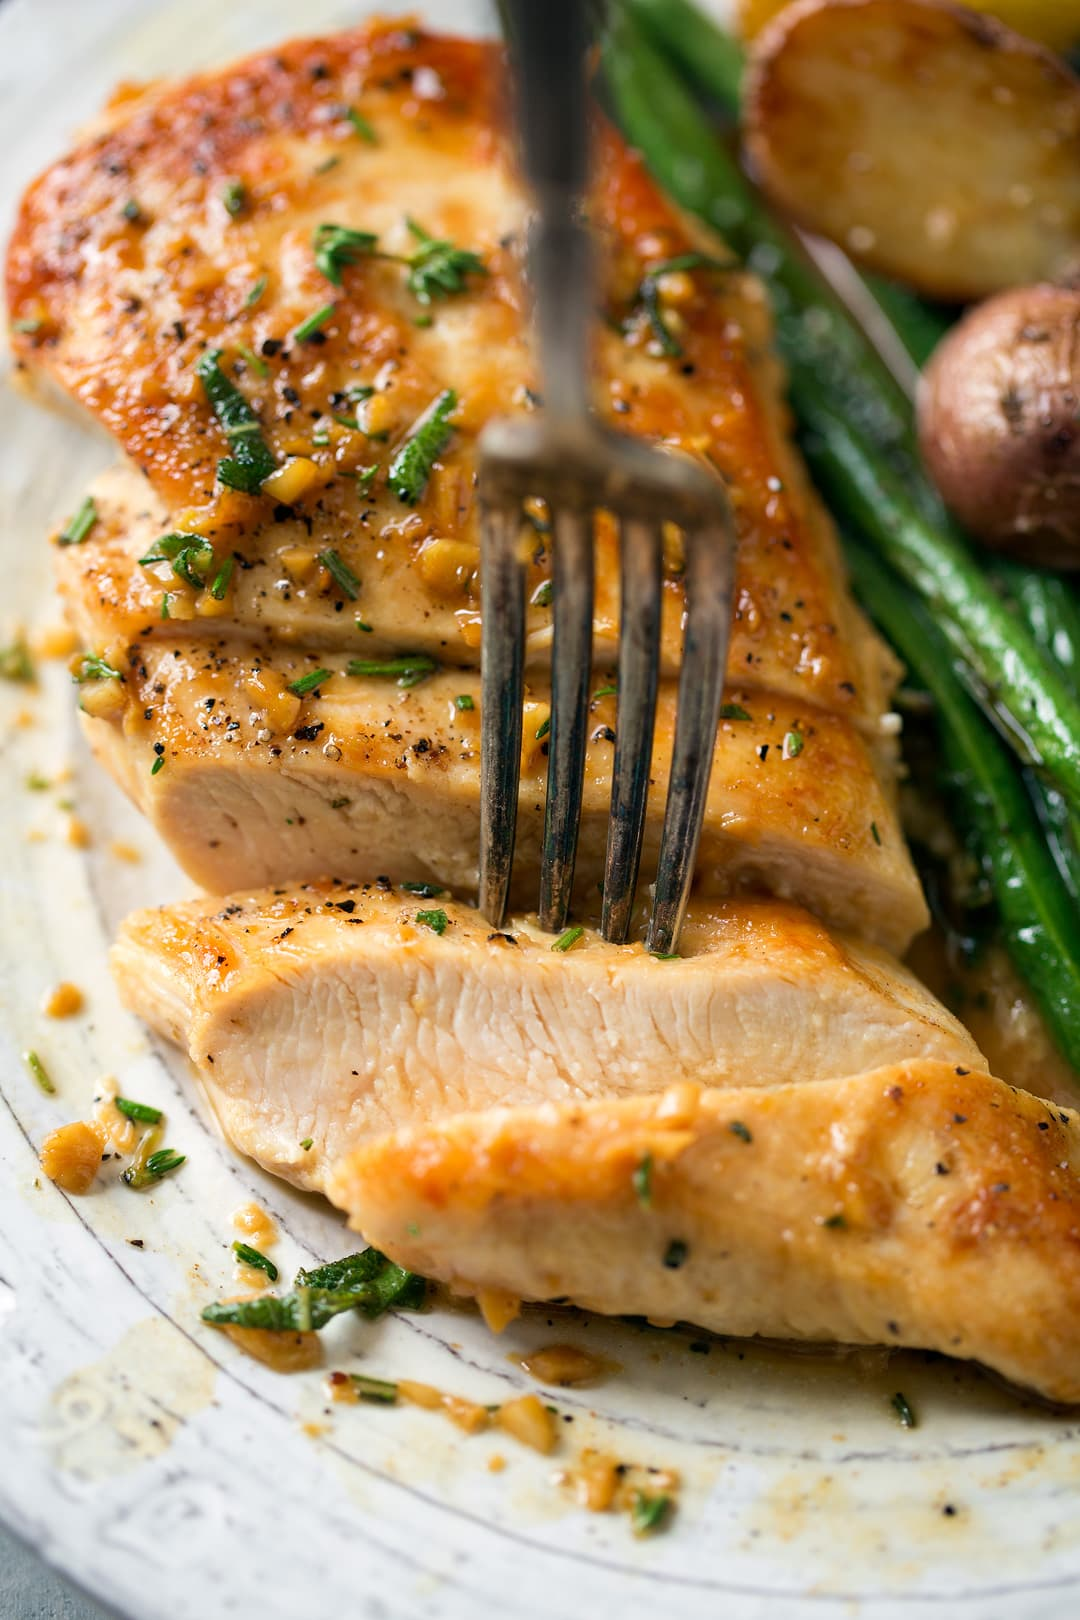 Skillet Chicken with Garlic Herb Butter Sauce - Cooking Classy